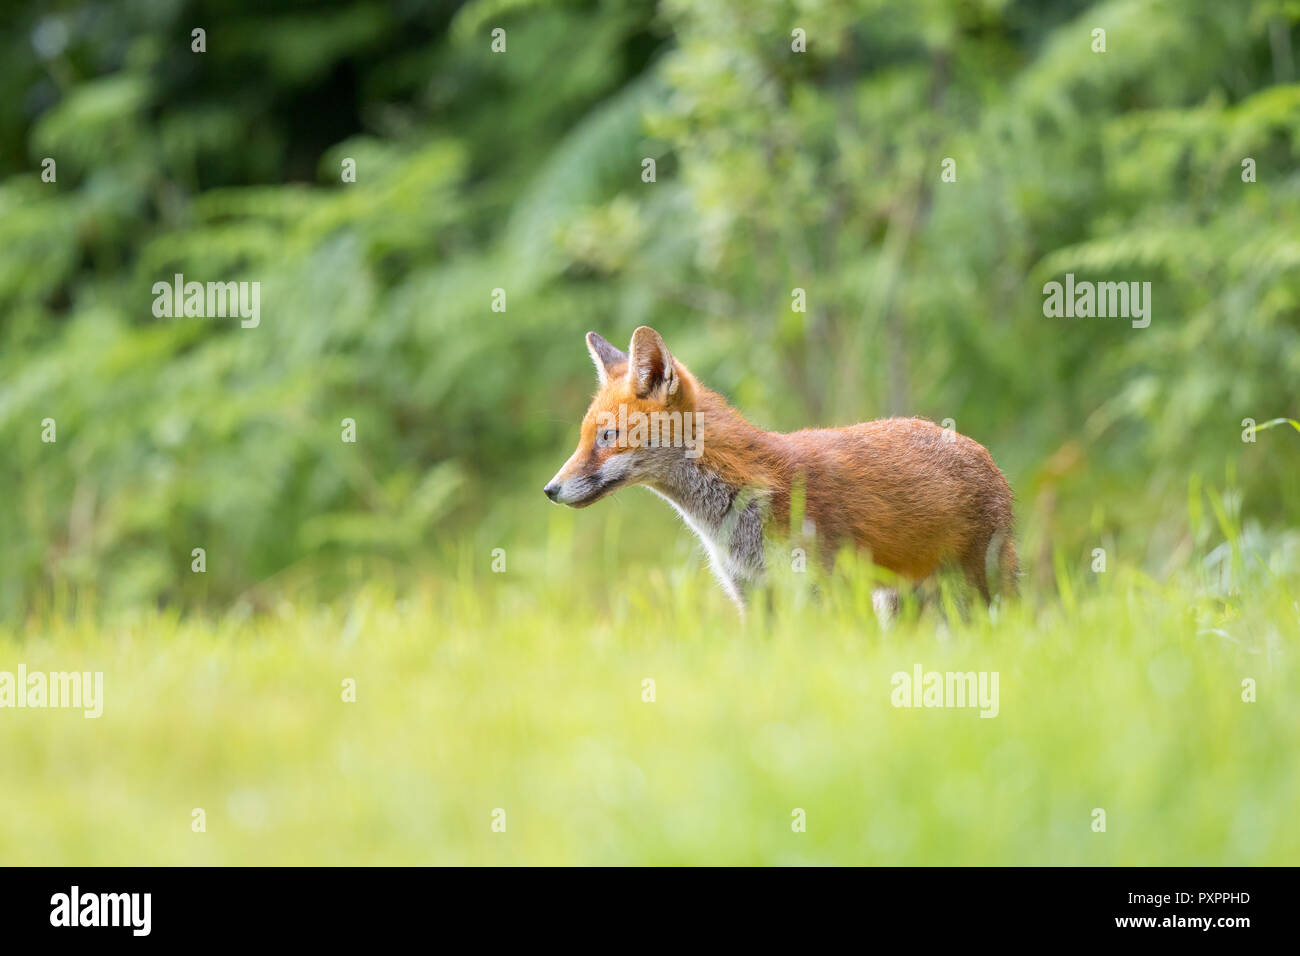 Detailed, close-up side view of young, wild, British red fox (Vulpes vulpes) standing isolated in long grass in outdoor natural UK countryside habitat. - Stock Image